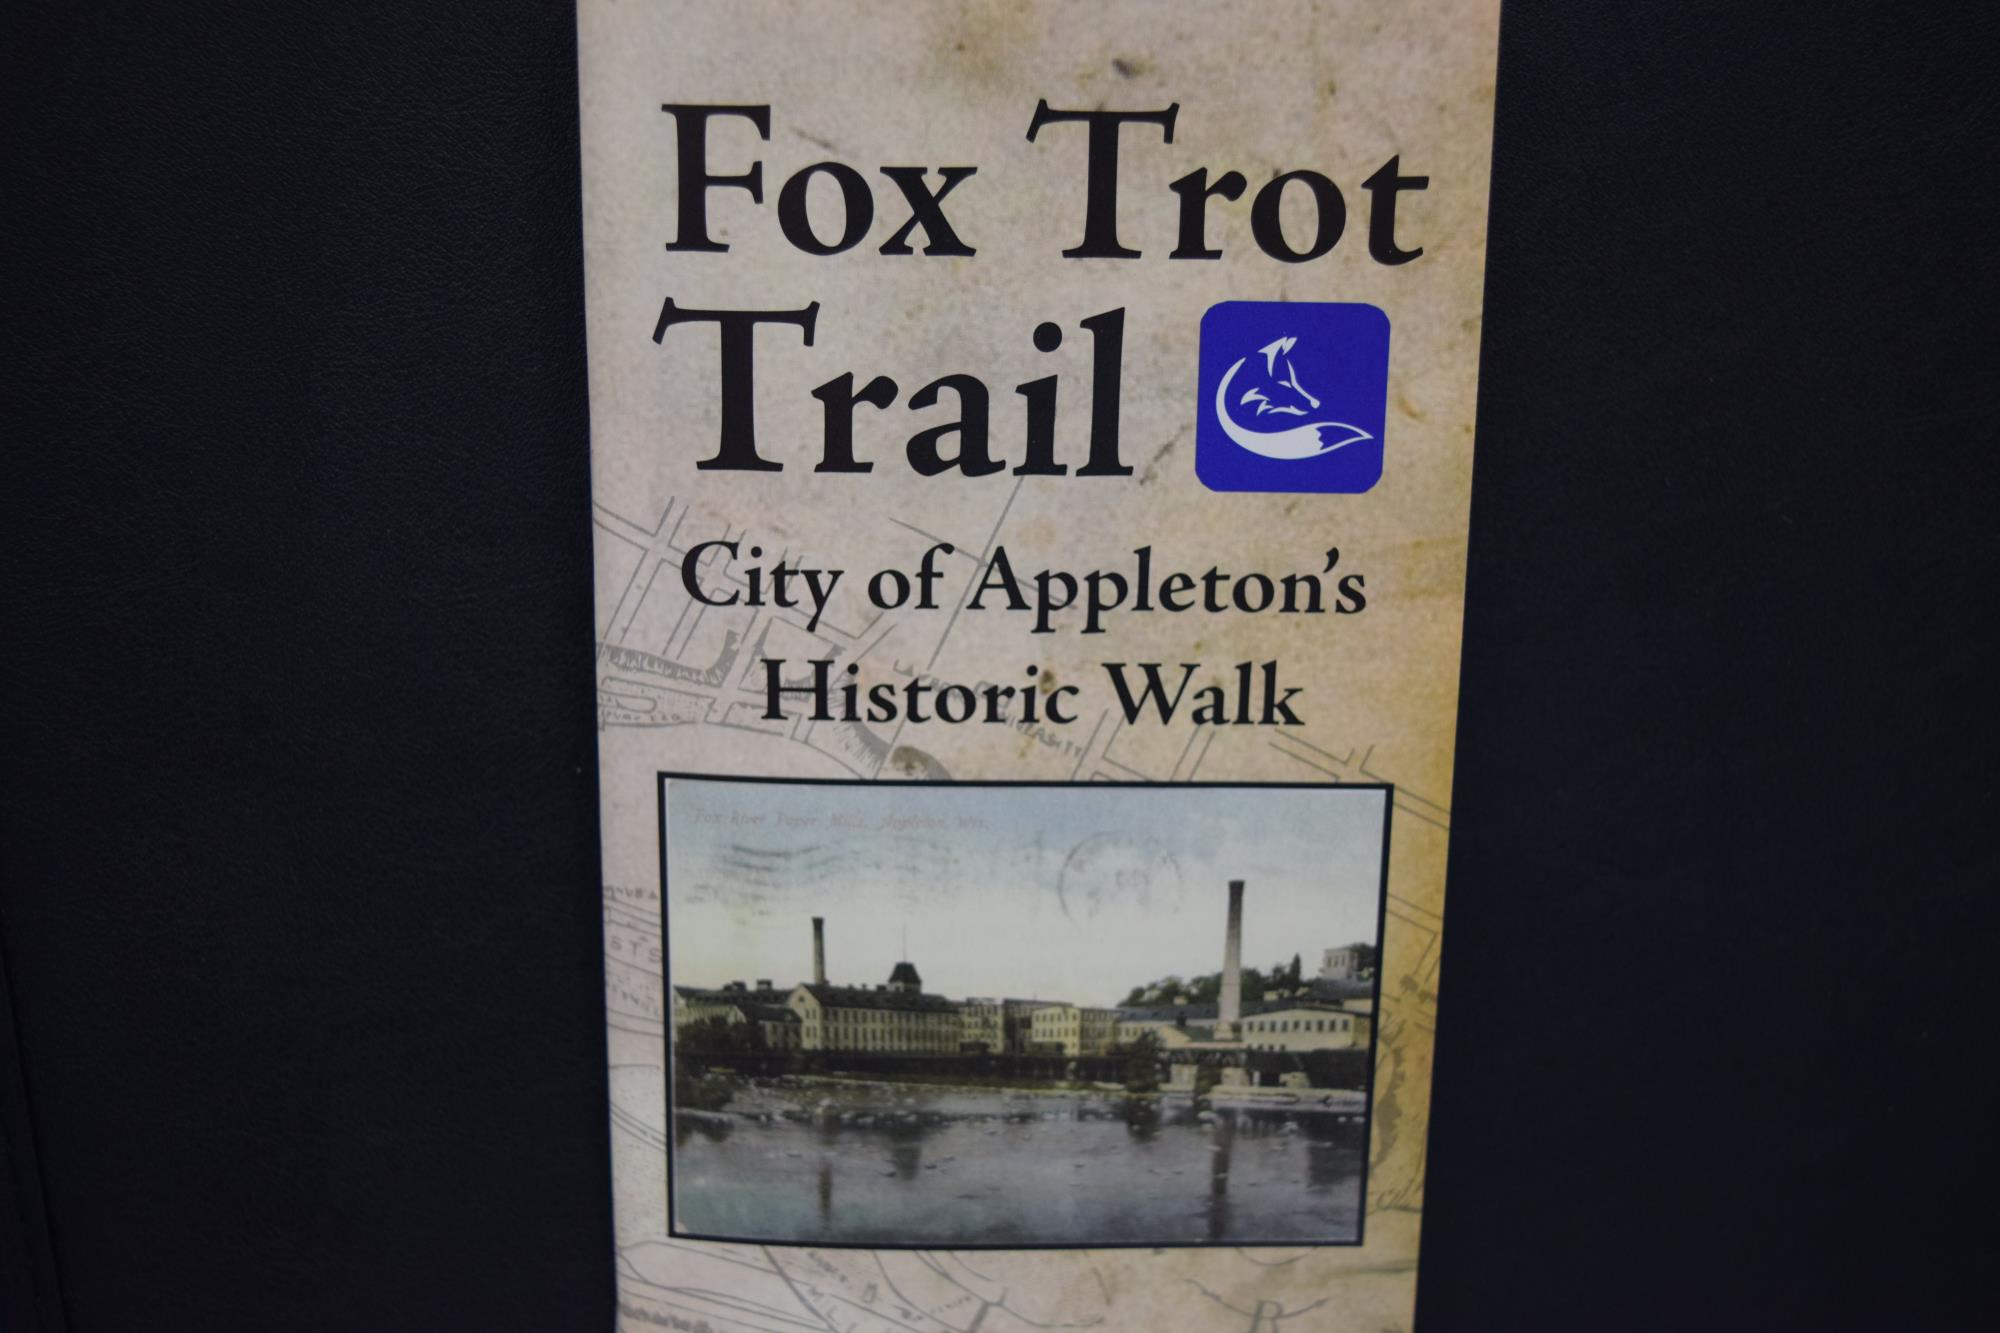 Take a stroll on the new Fox Trot Trail